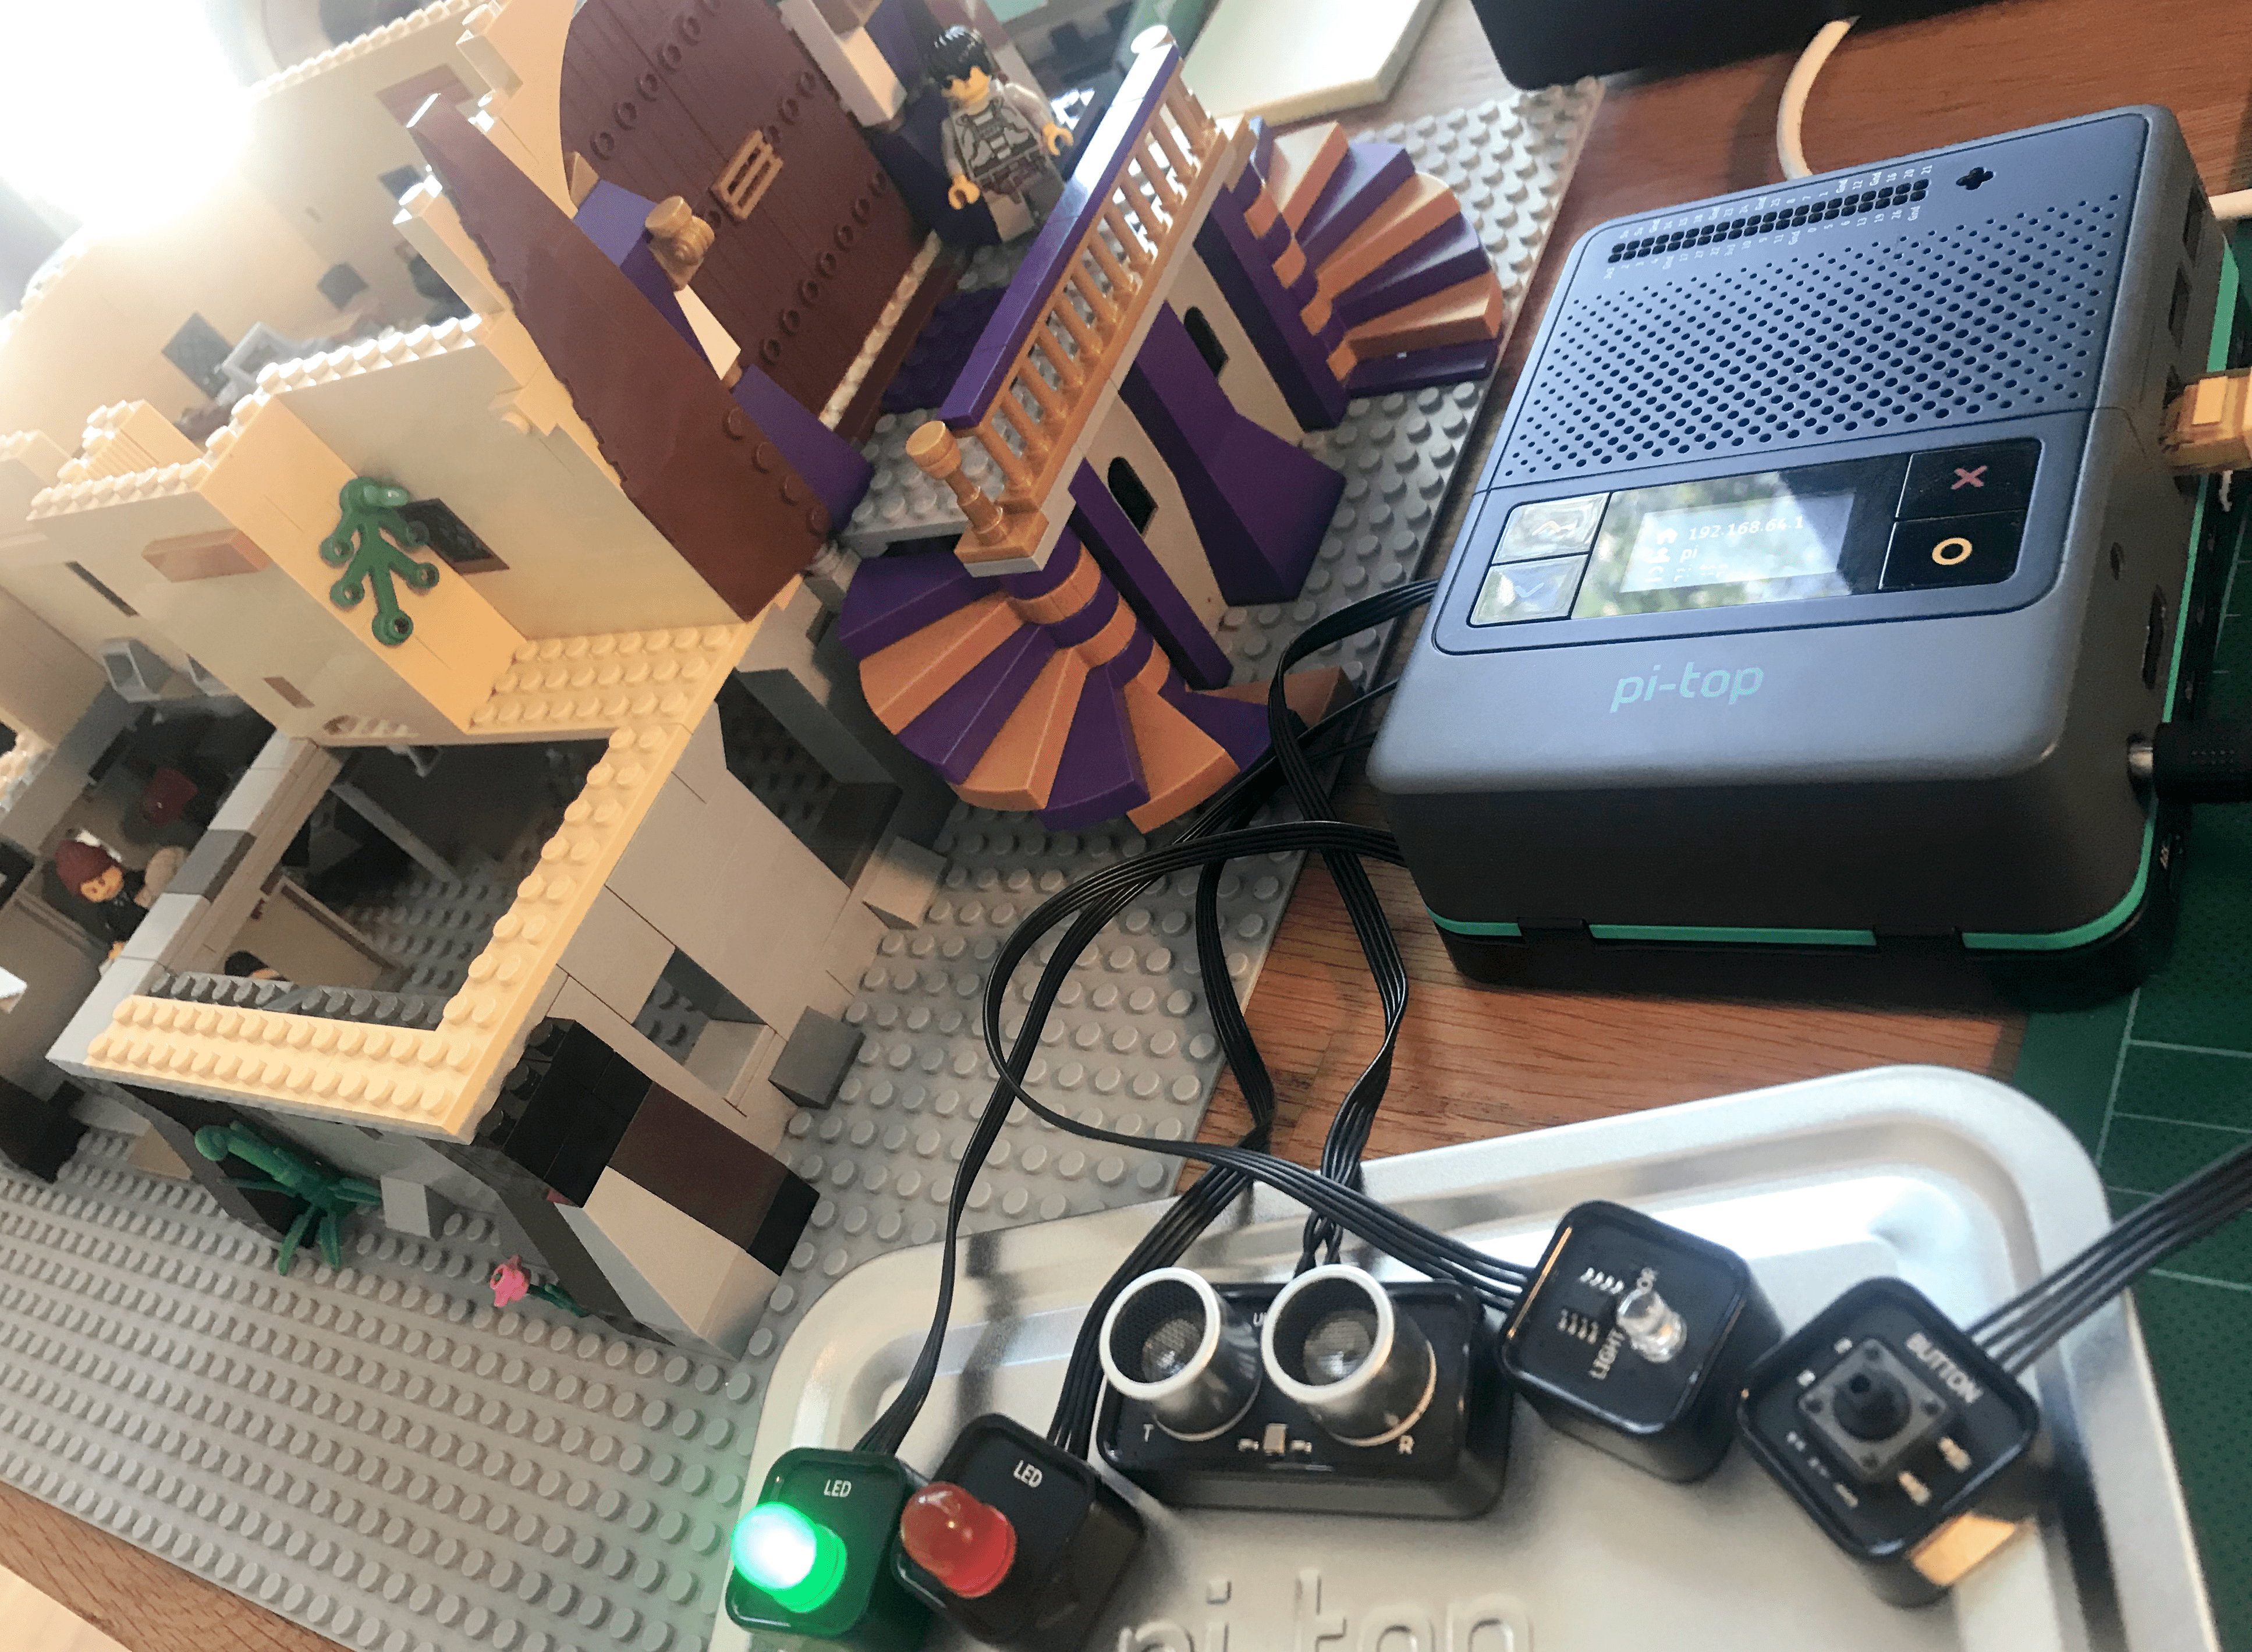 INTRUDER! Using code, pi-top [4] and LEGO in your club or classroom